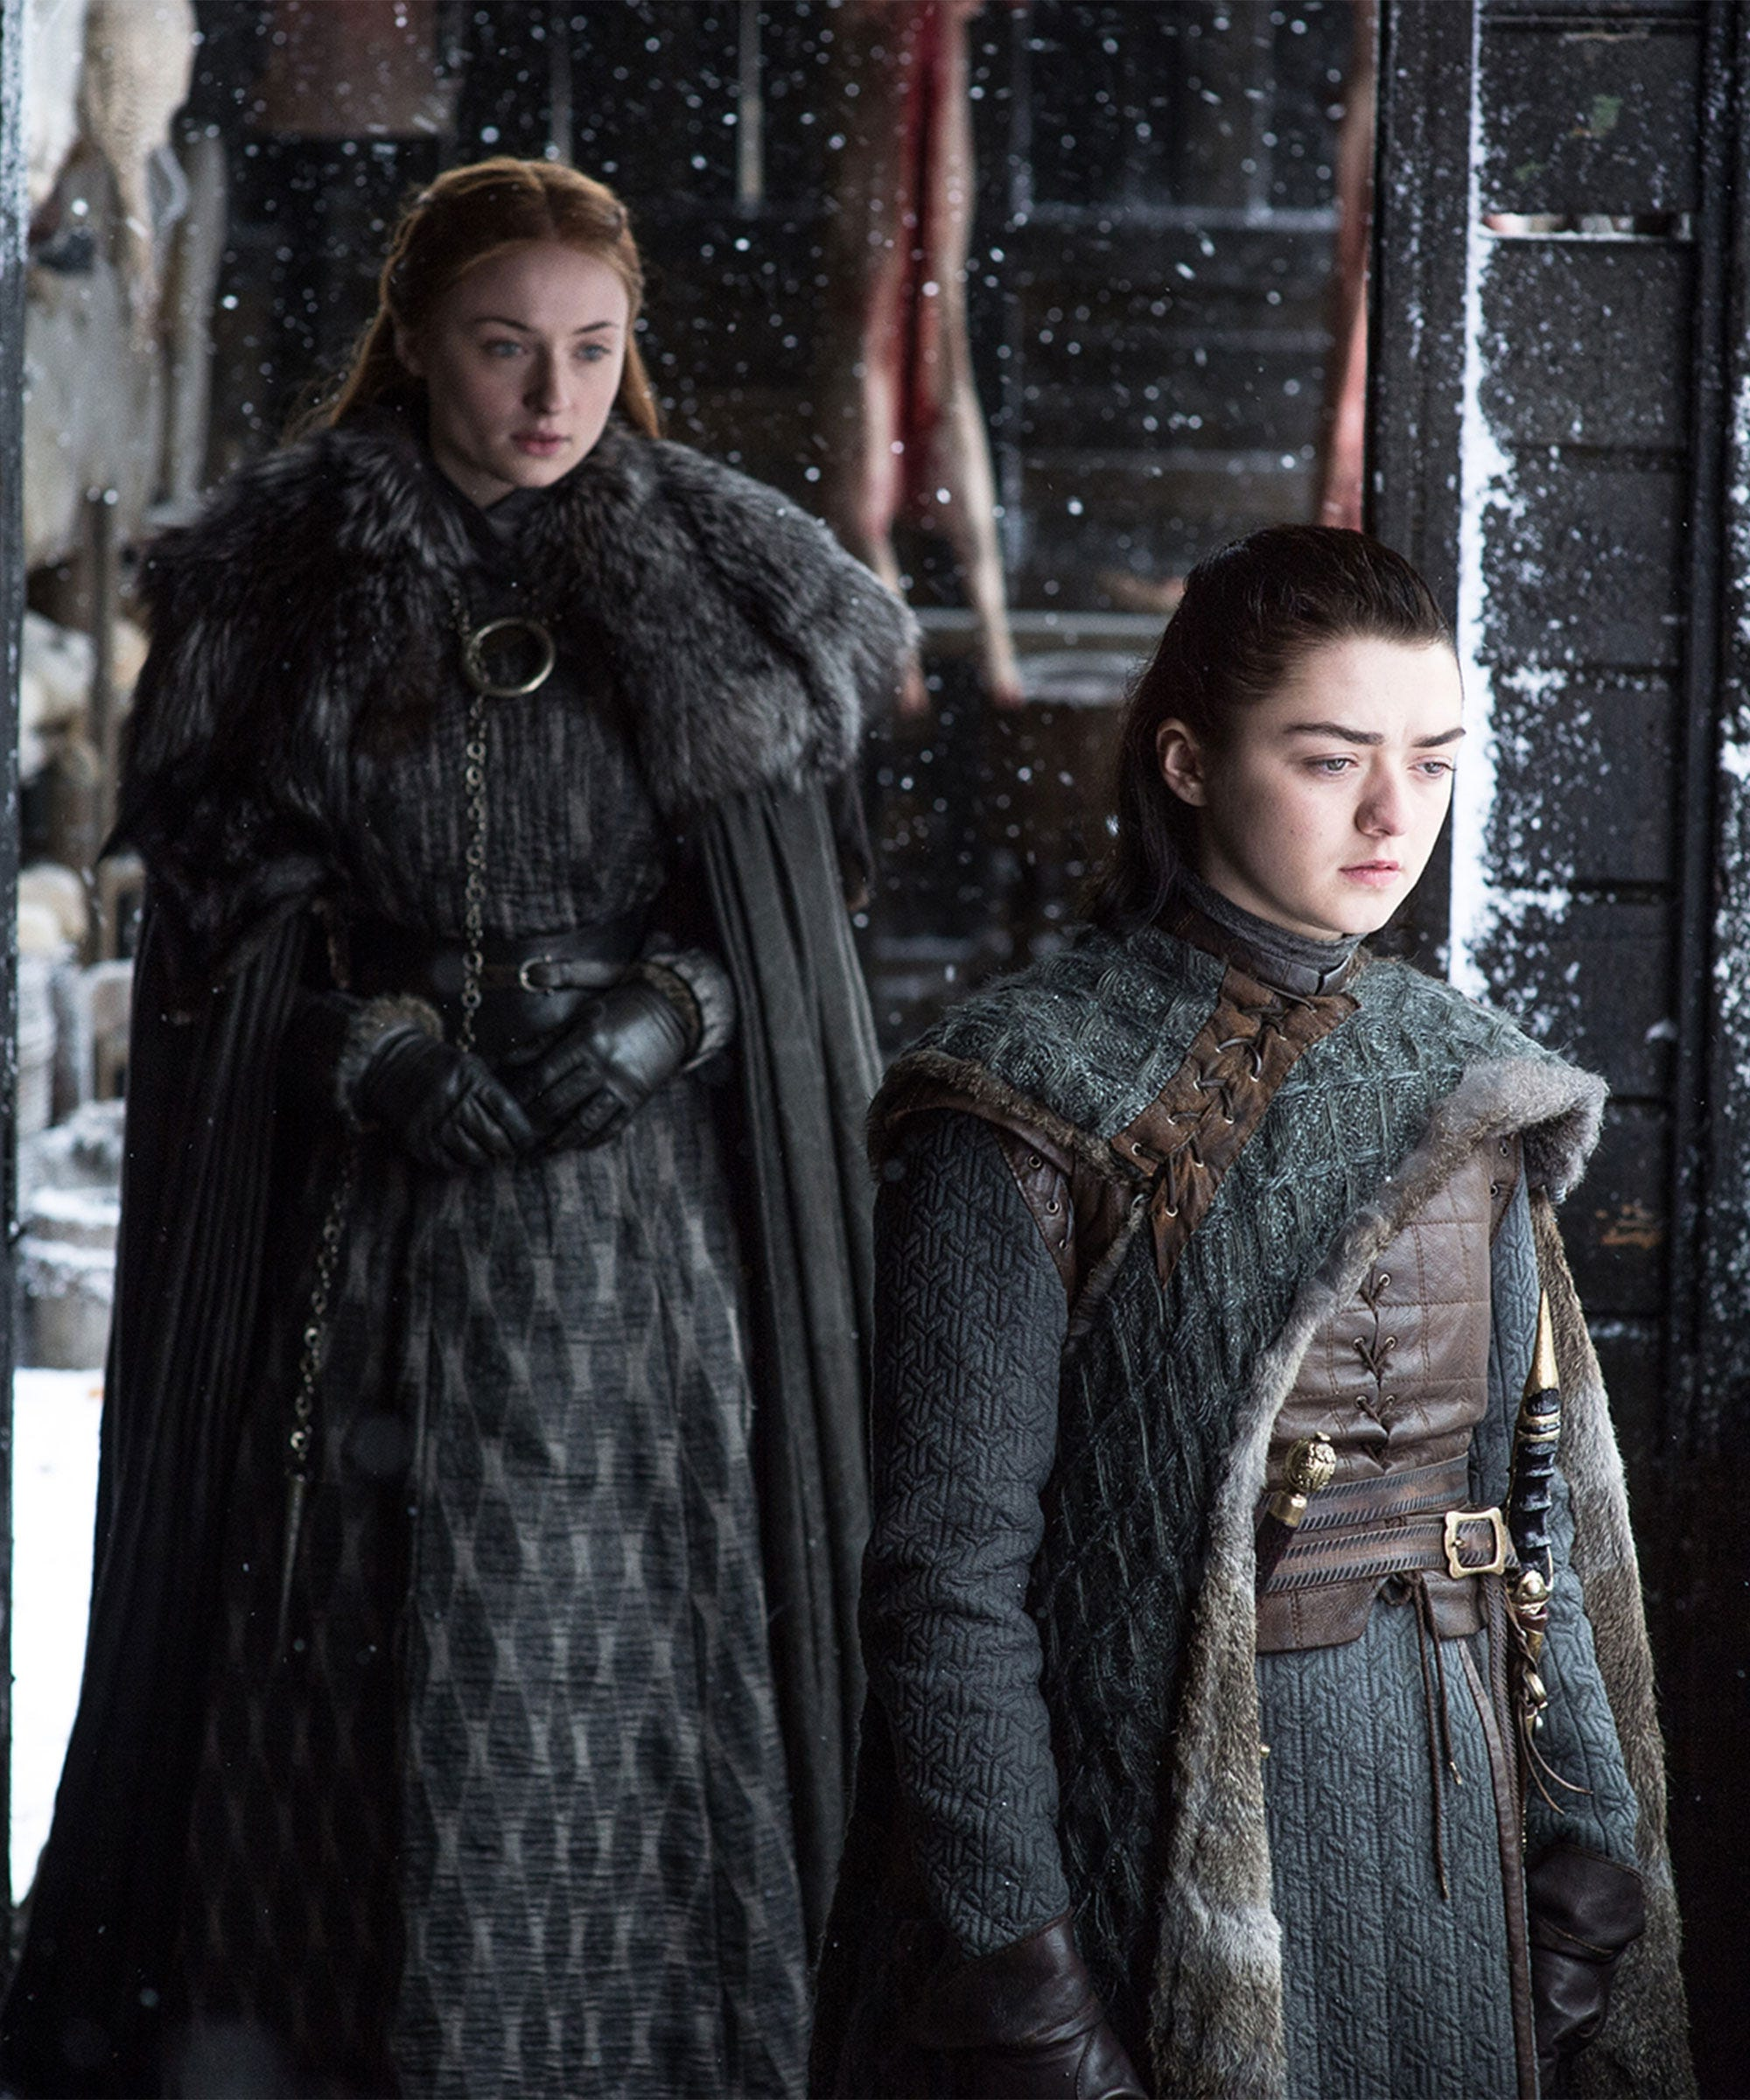 How Old Are Game Of Thrones Characters Supposed To Be?